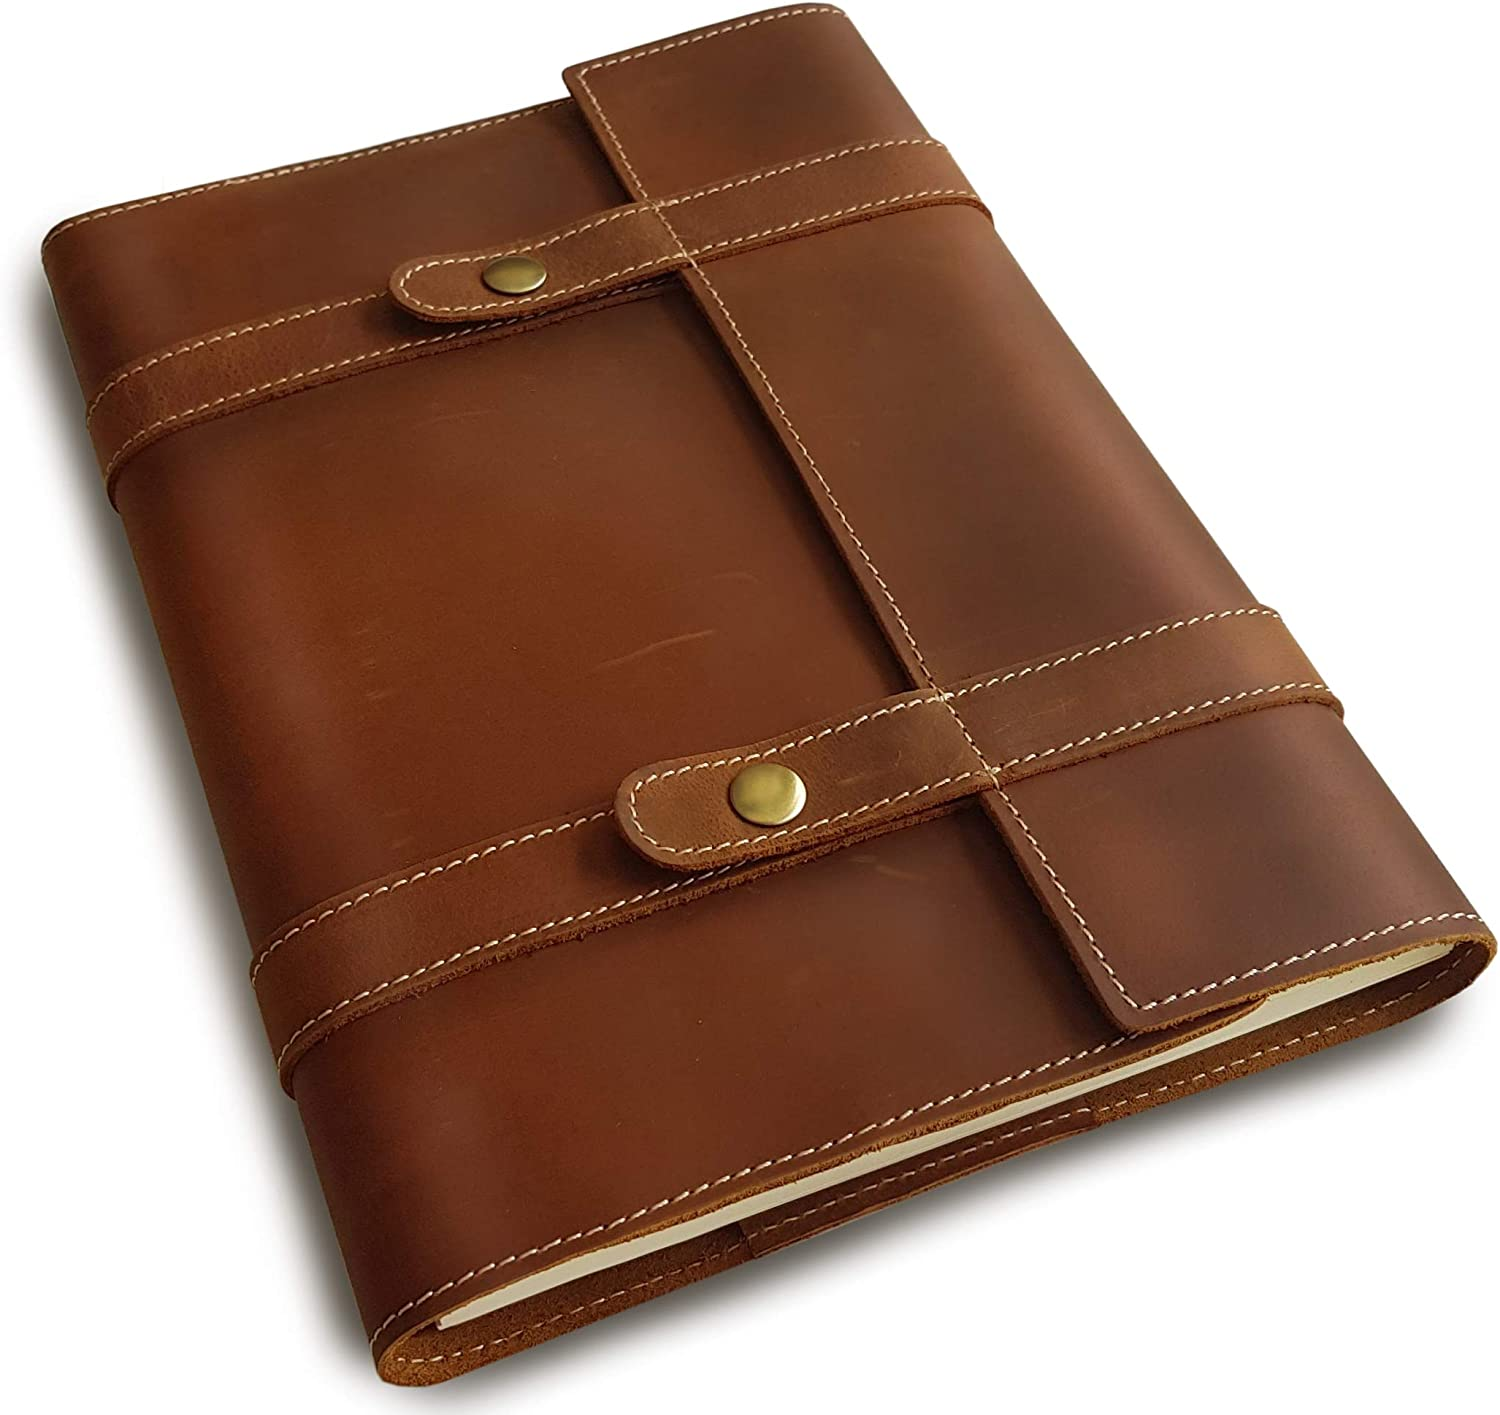 A4 Refillable Leather Journal - Professional Portfolio Planner Cover with 8x11 Business Notebook - Large Travelers Notebook Spiral - Lined 200 Pages - 8.27x11.69 Handmade Folder - By Le Vent